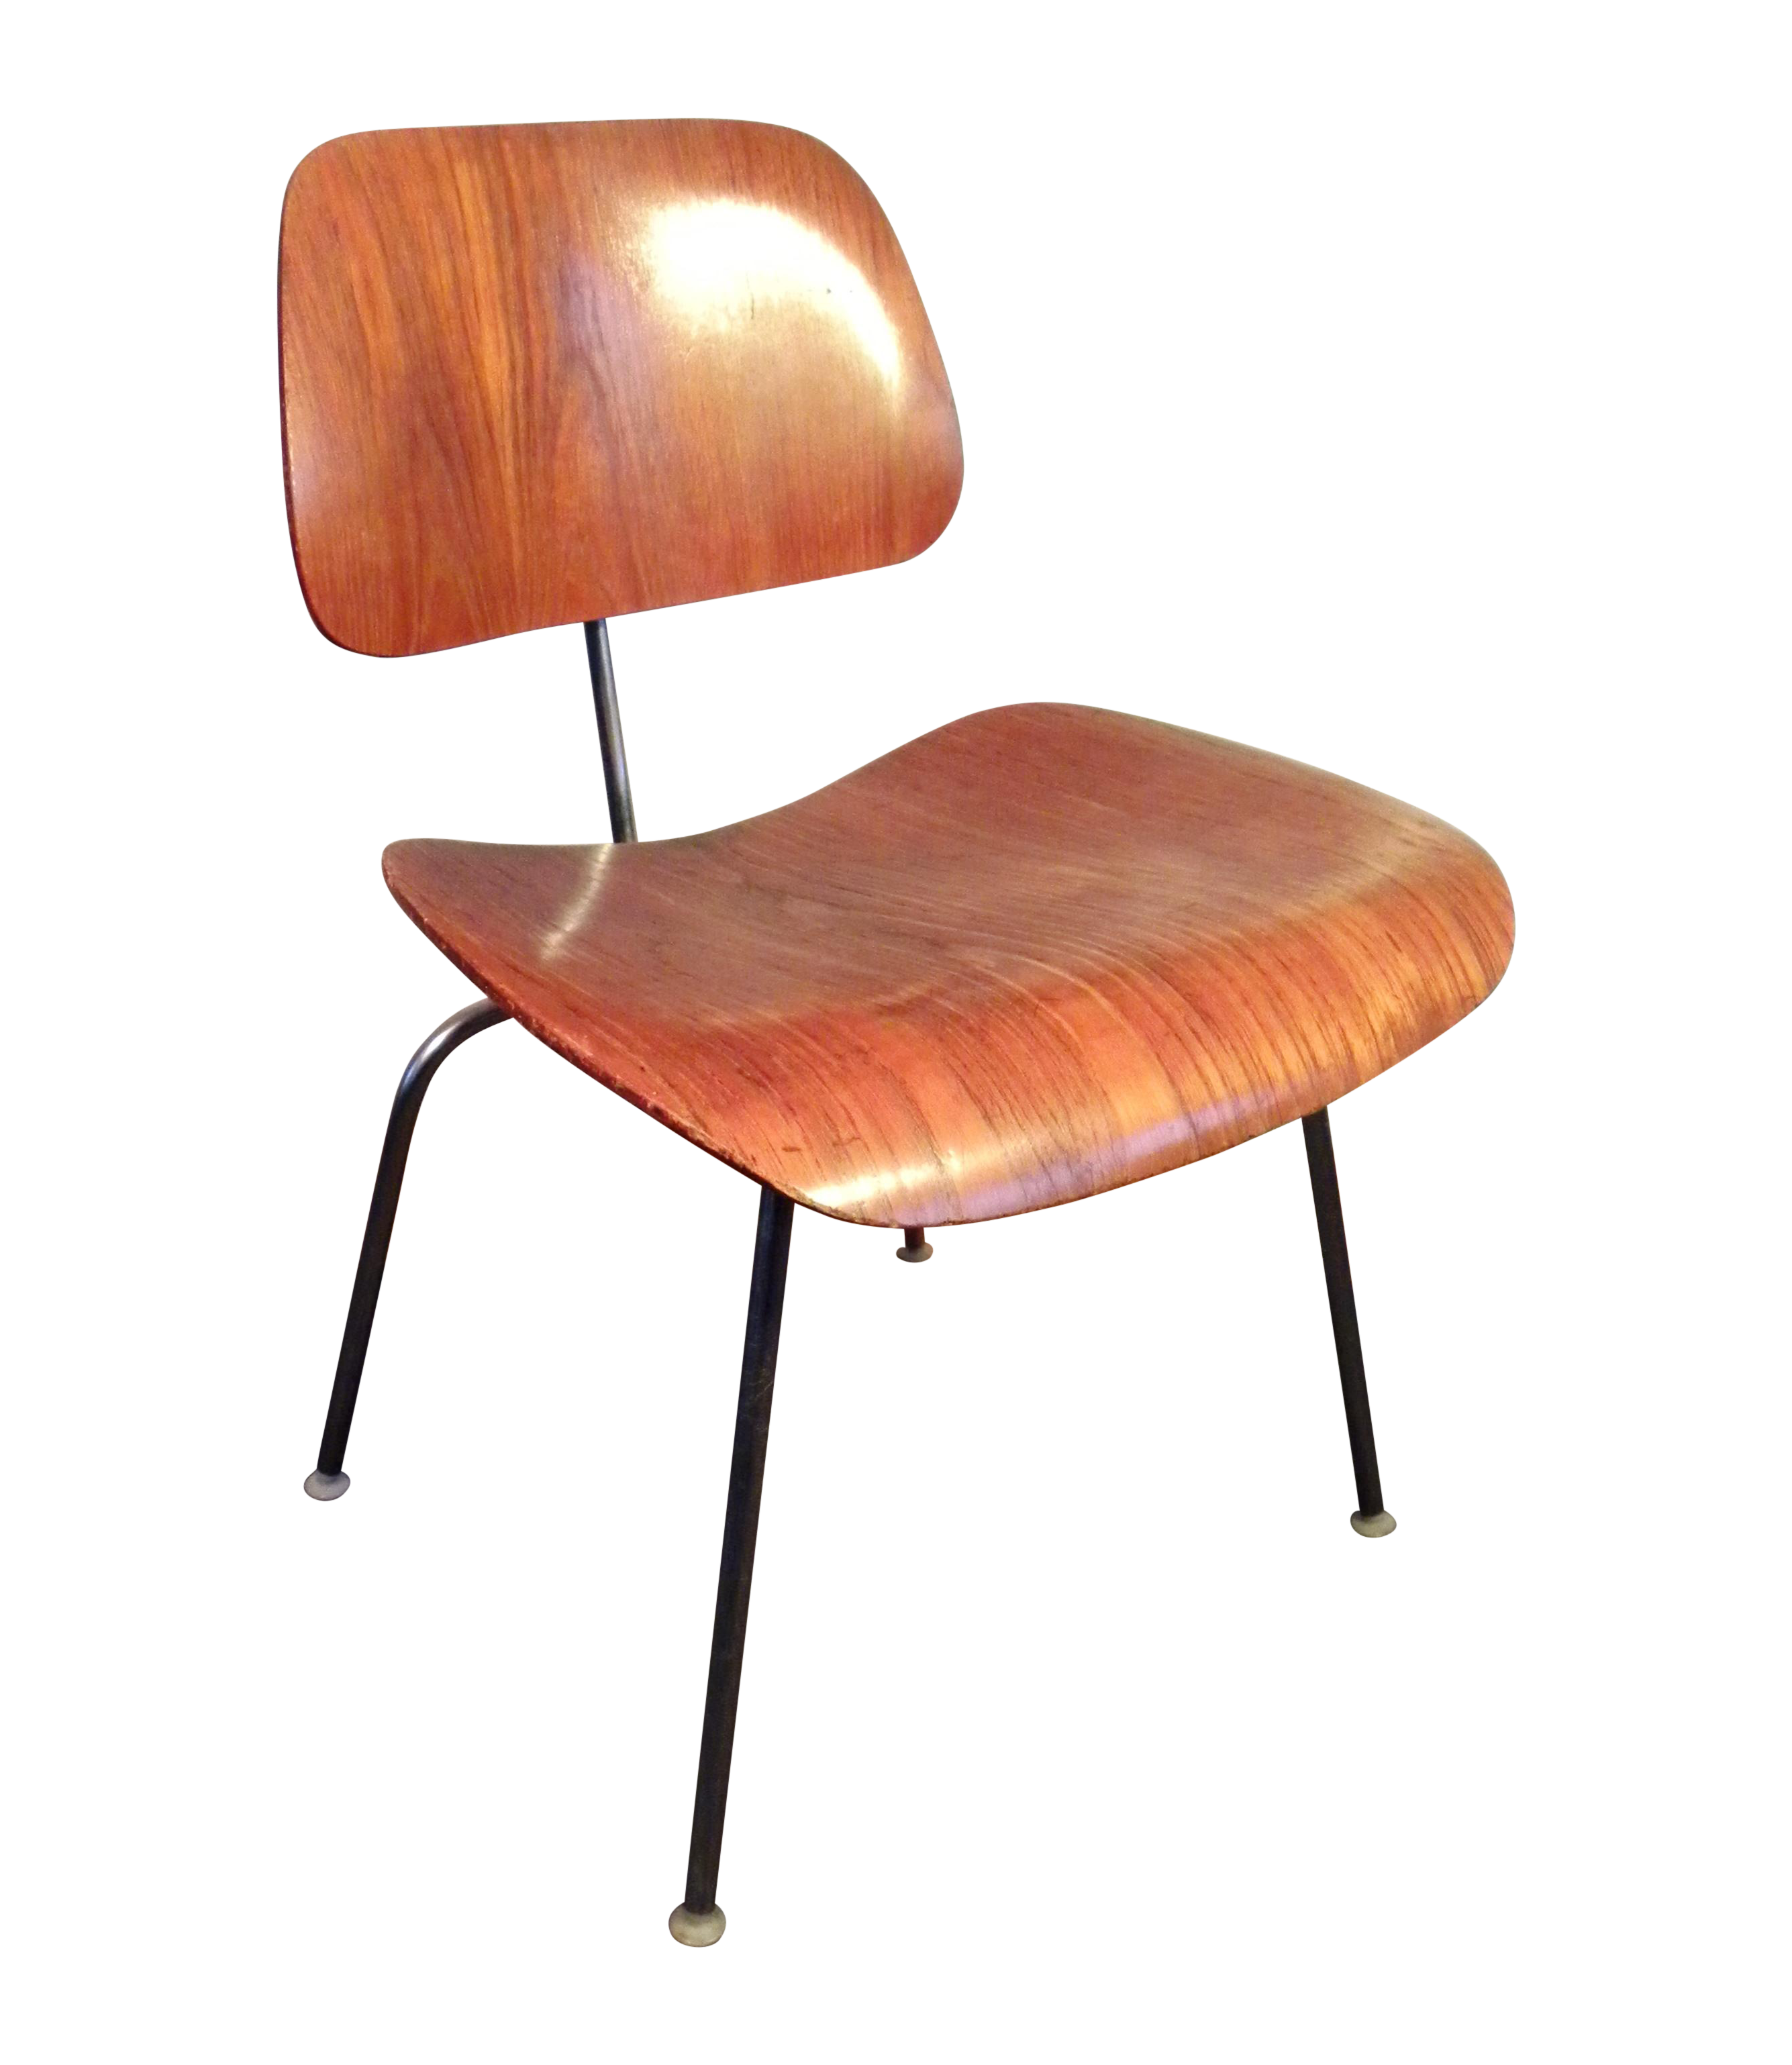 Eames Chair Wien original 1960 s eames herman miller dcm chair plywood lounge